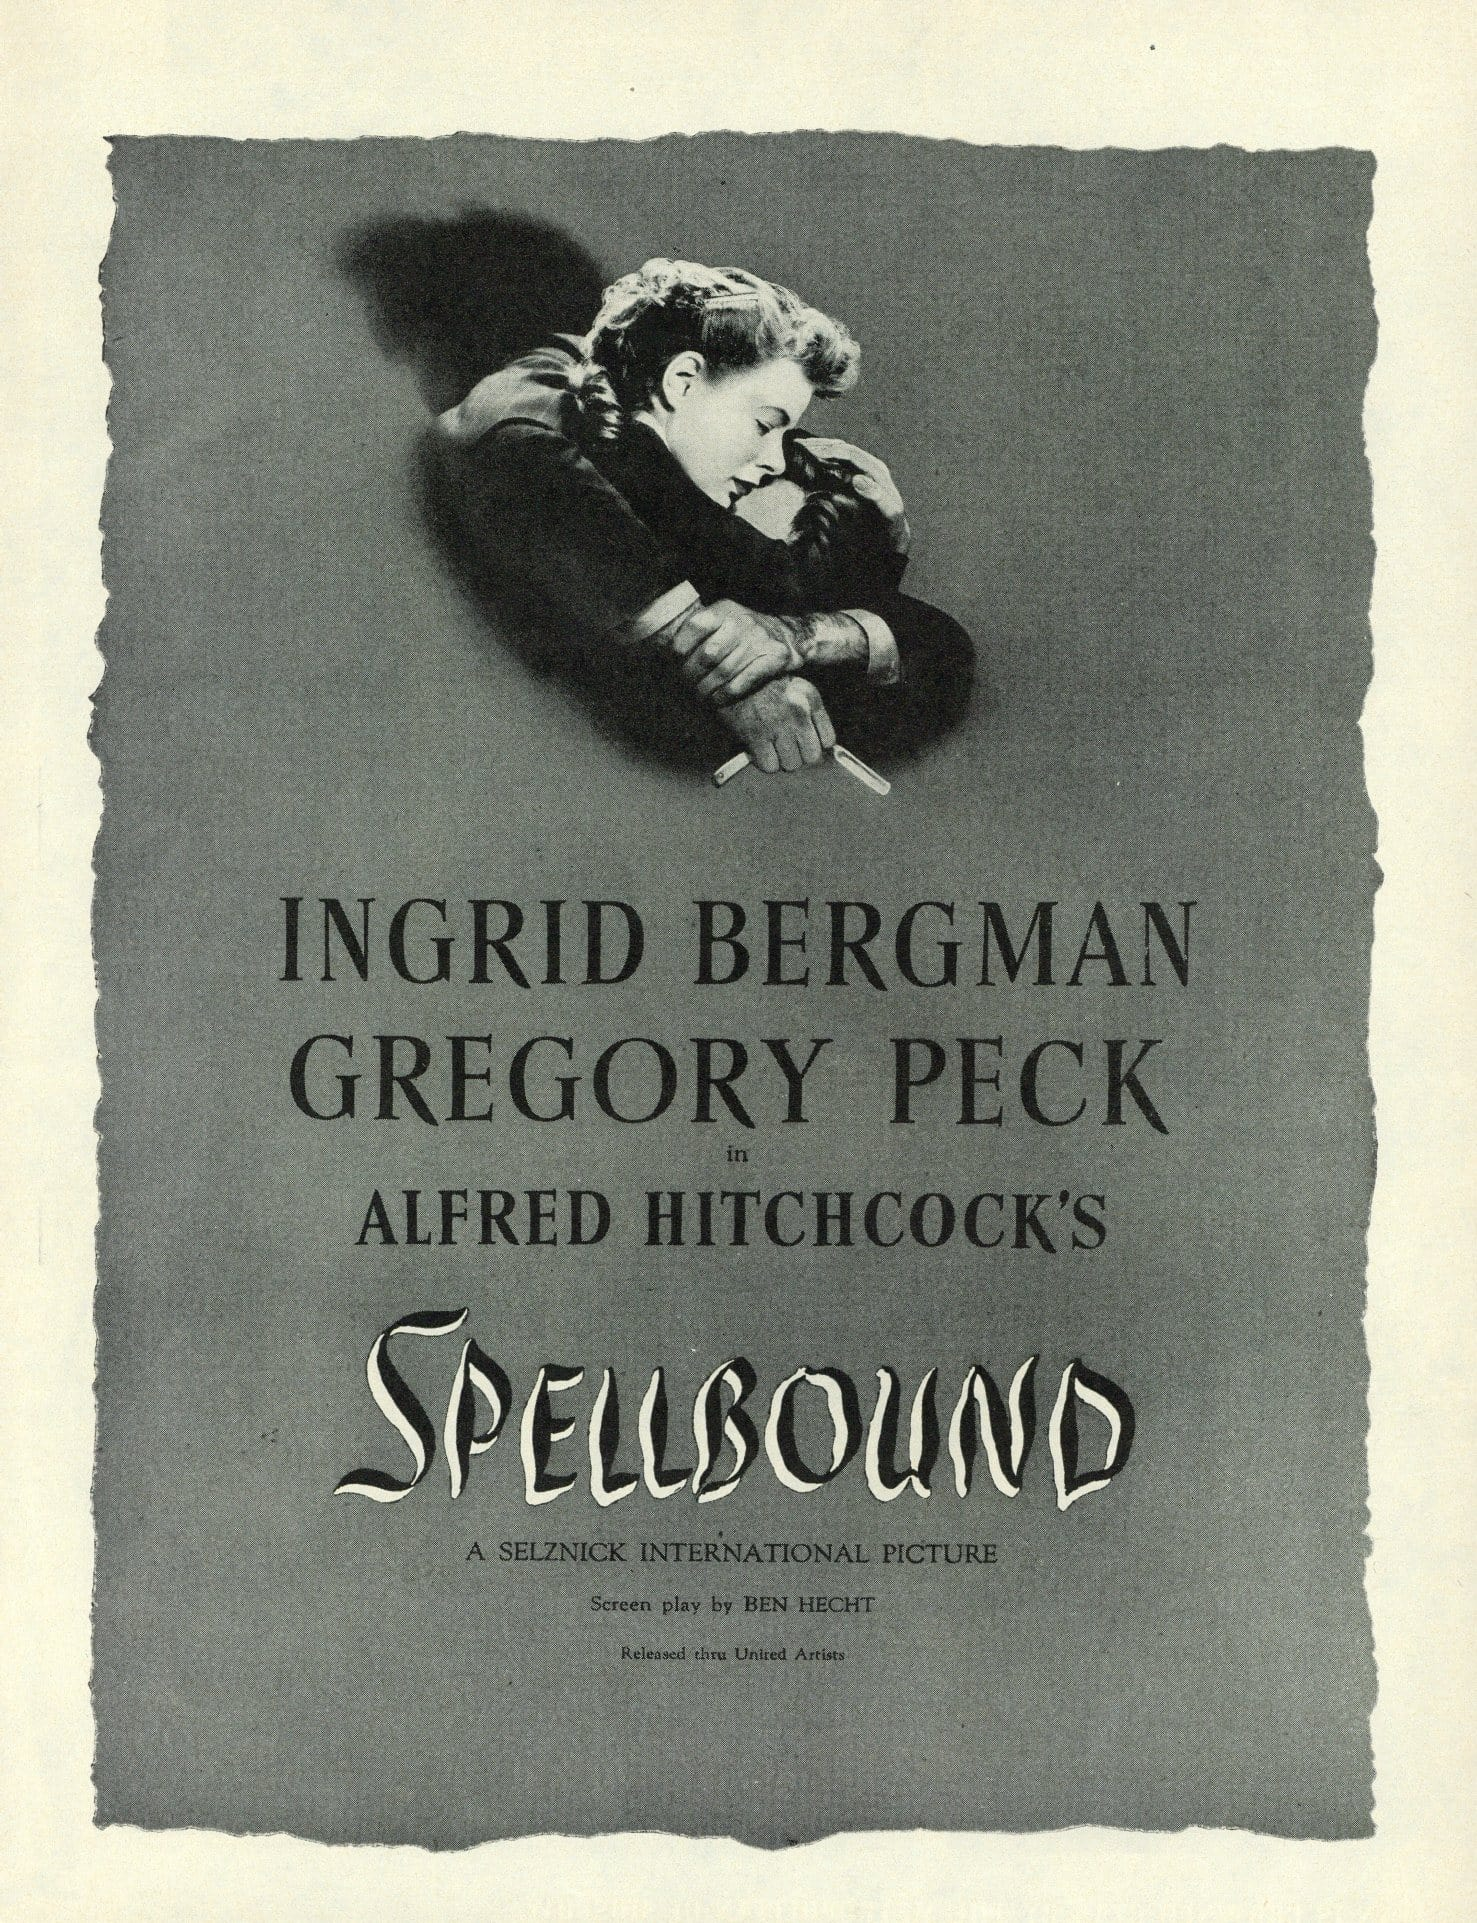 Alfred Hitchcock's Spellbound Movie Advertisement - Ingrid Bergman Memorabilia